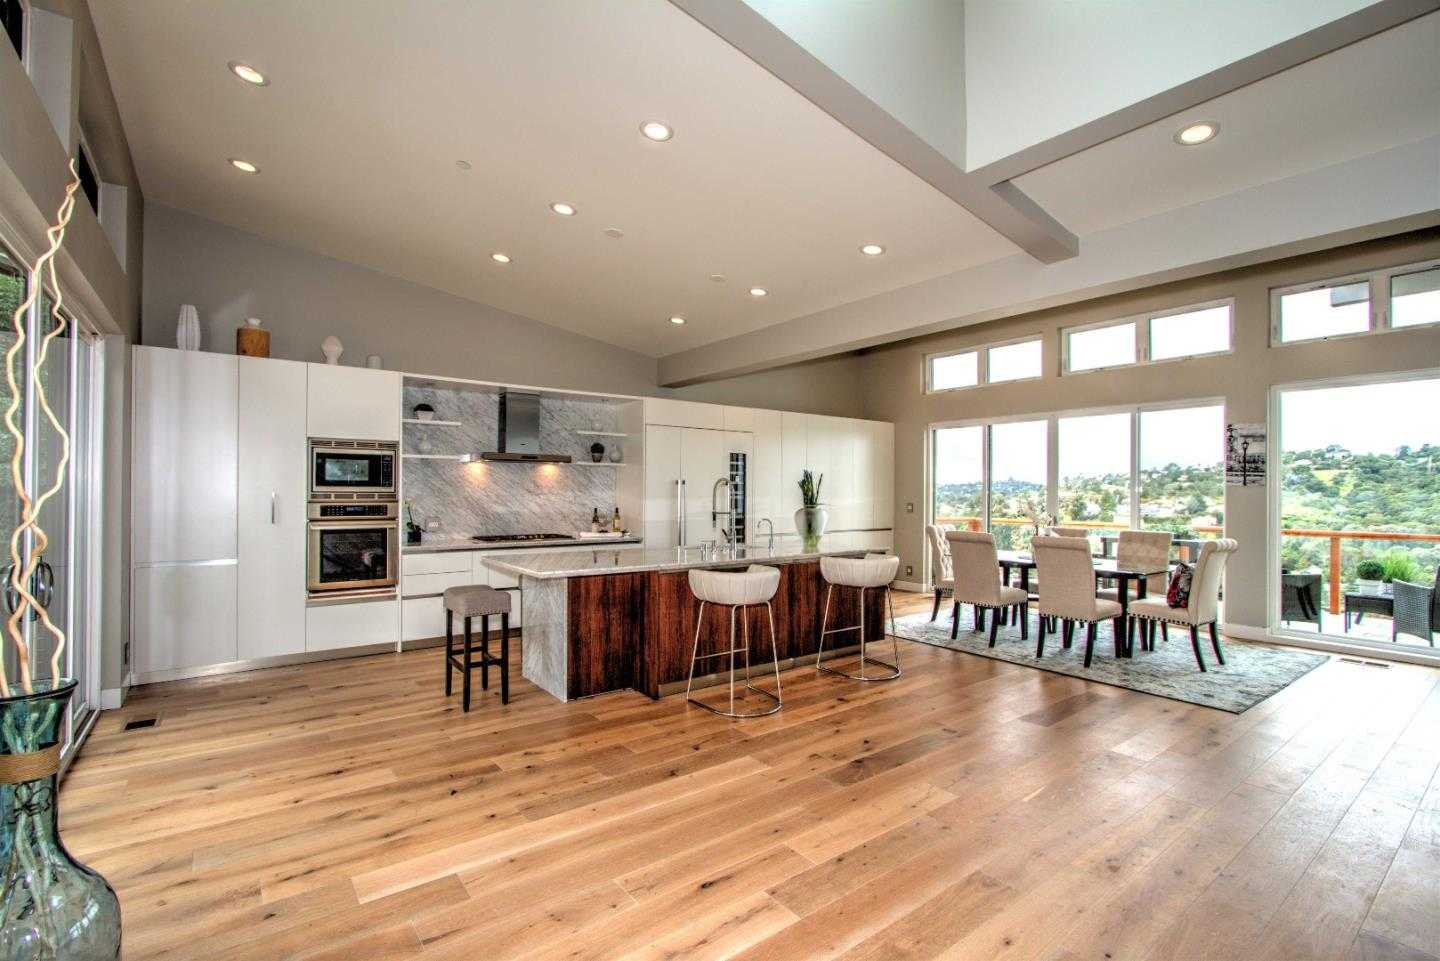 $3,295,000 - 4Br/4Ba -  for Sale in San Carlos